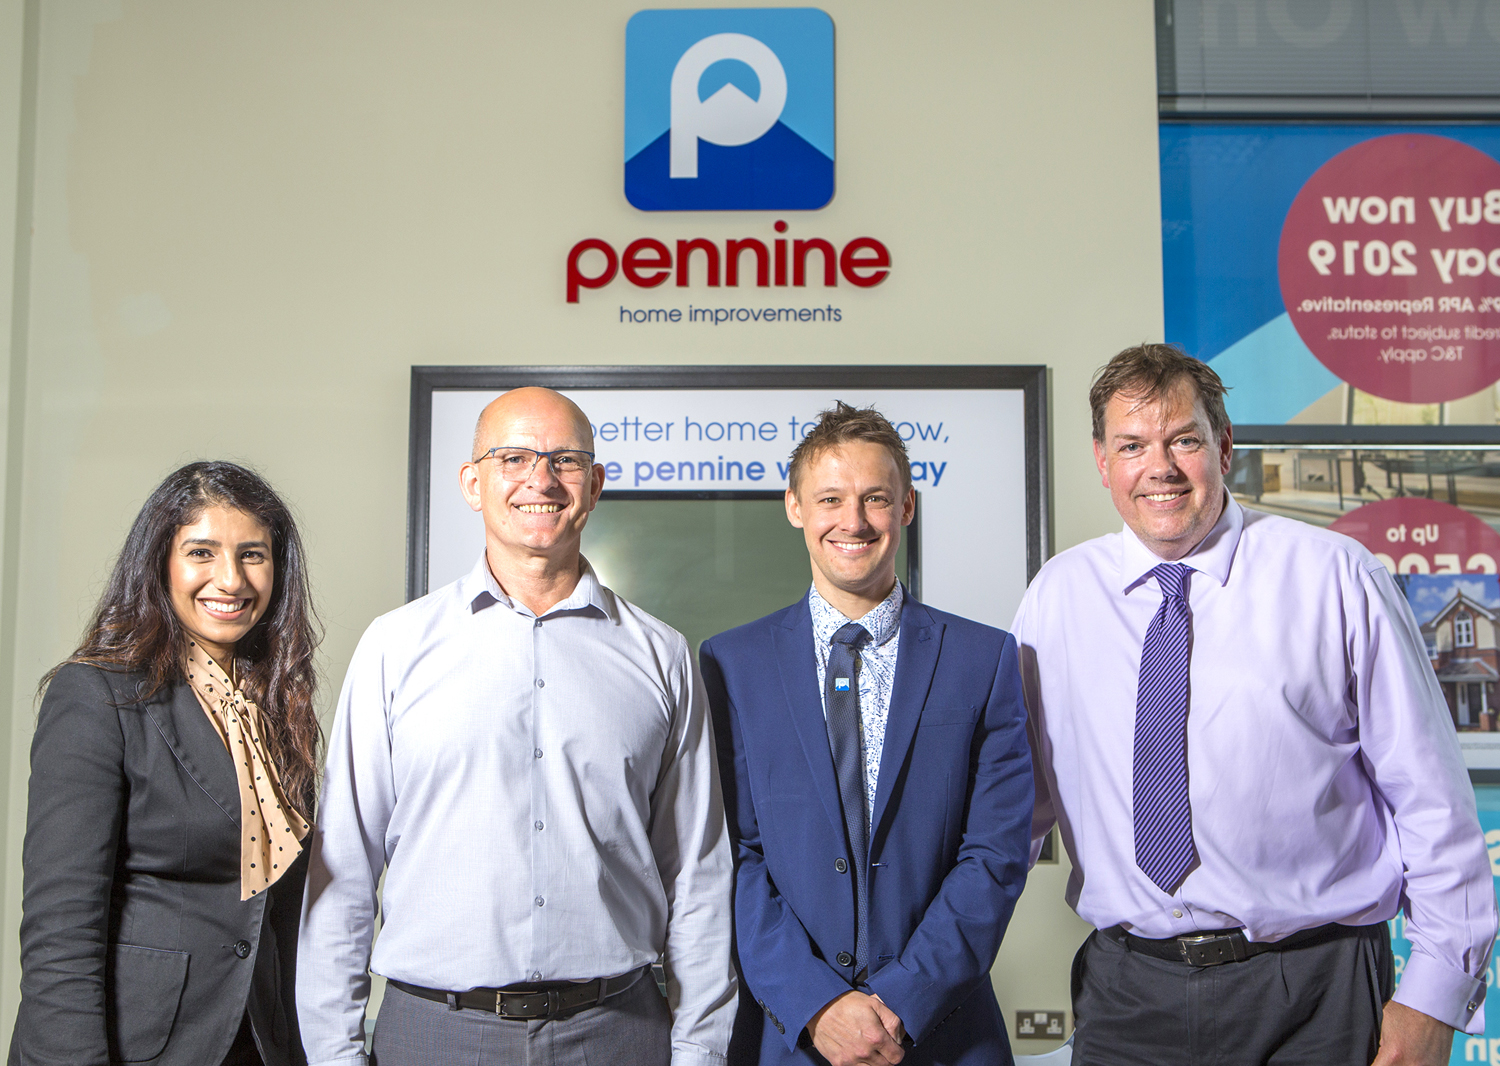 Continued Success at Pennine